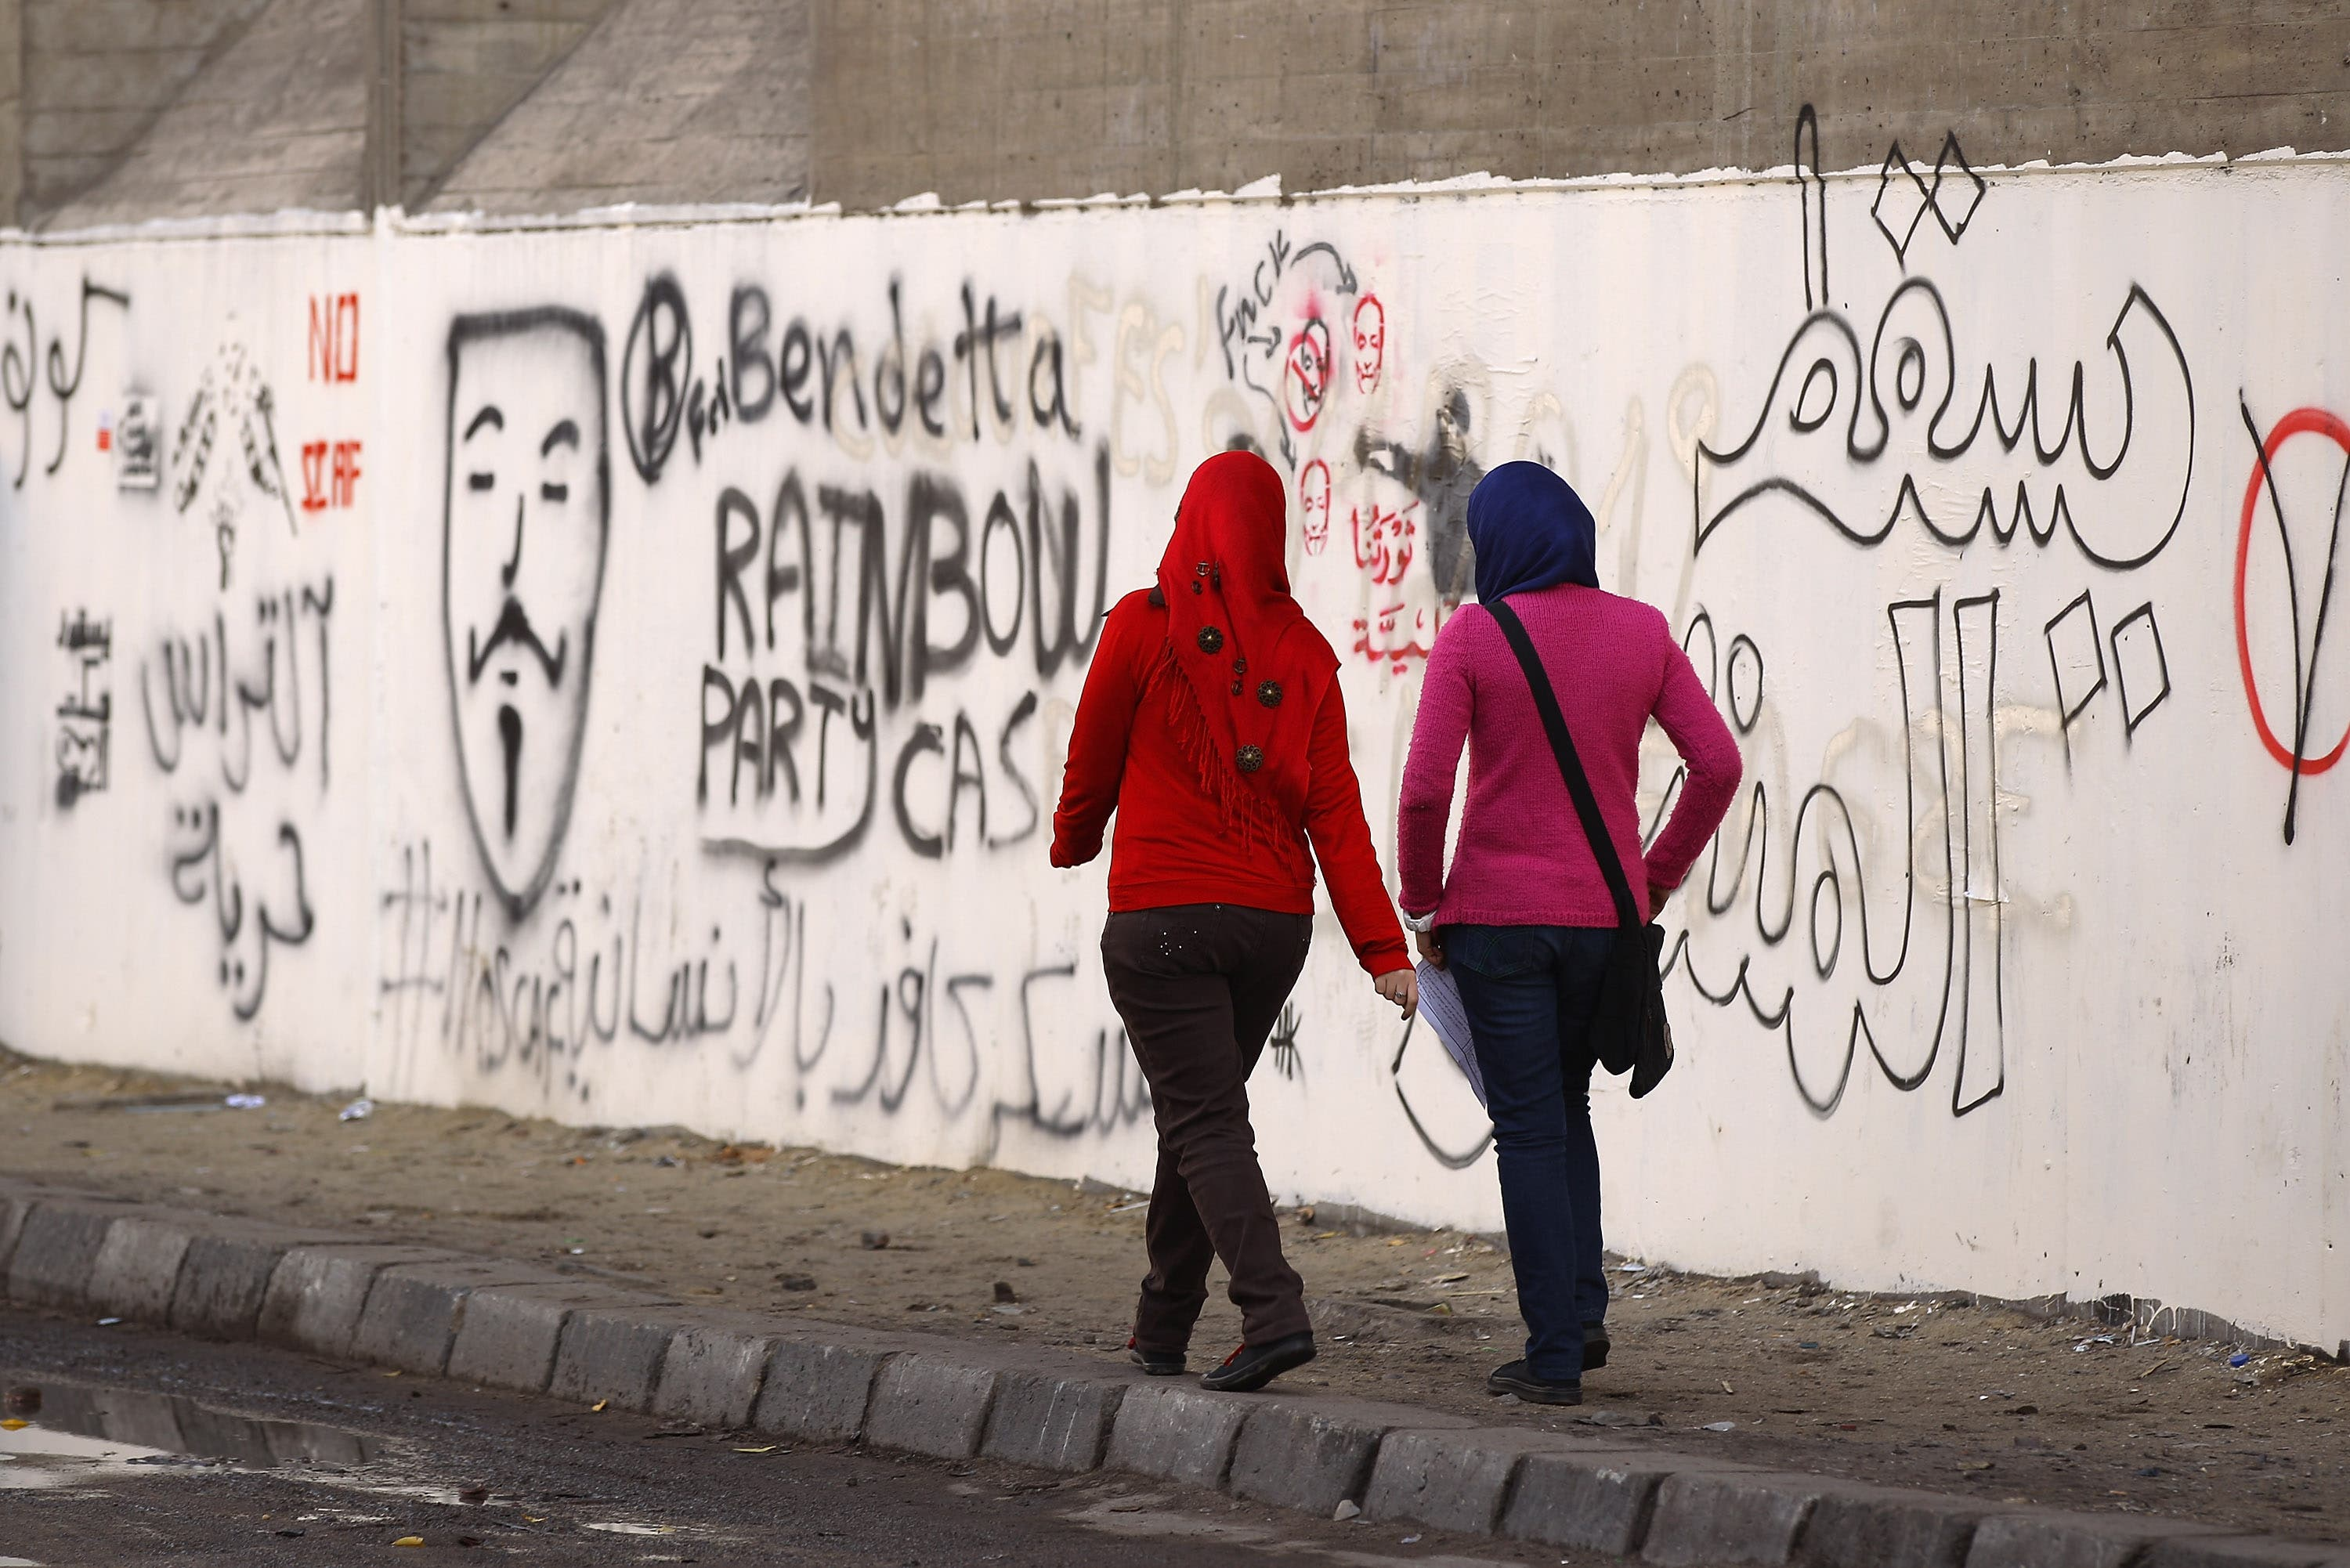 The streets of Cairo are fraught with potential danger for women.